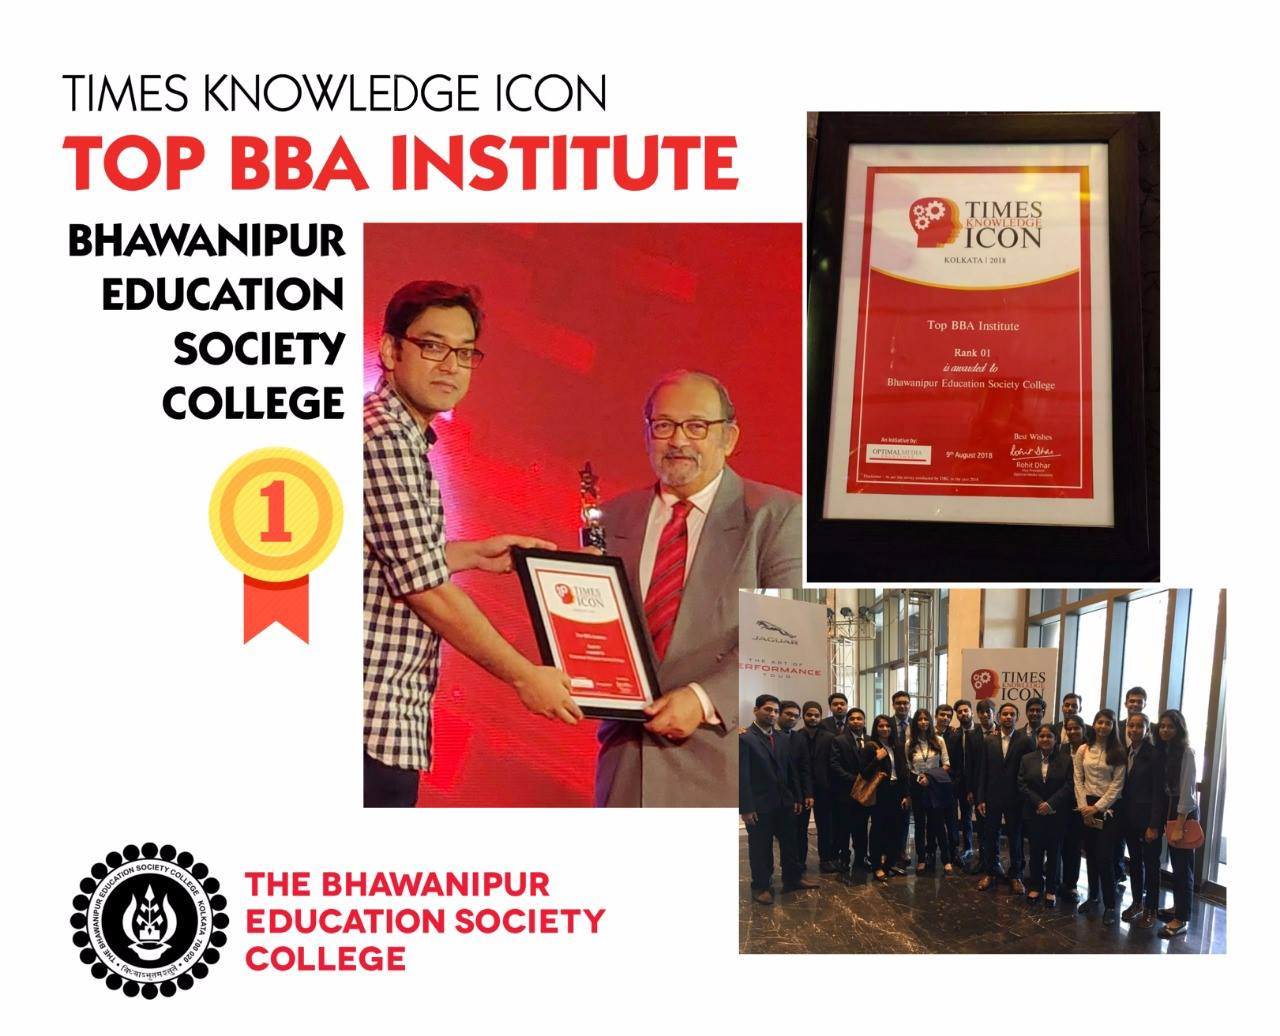 Times Knowledge Icon Awards Times Best BBA Institute Rank 1 (WB) 2018